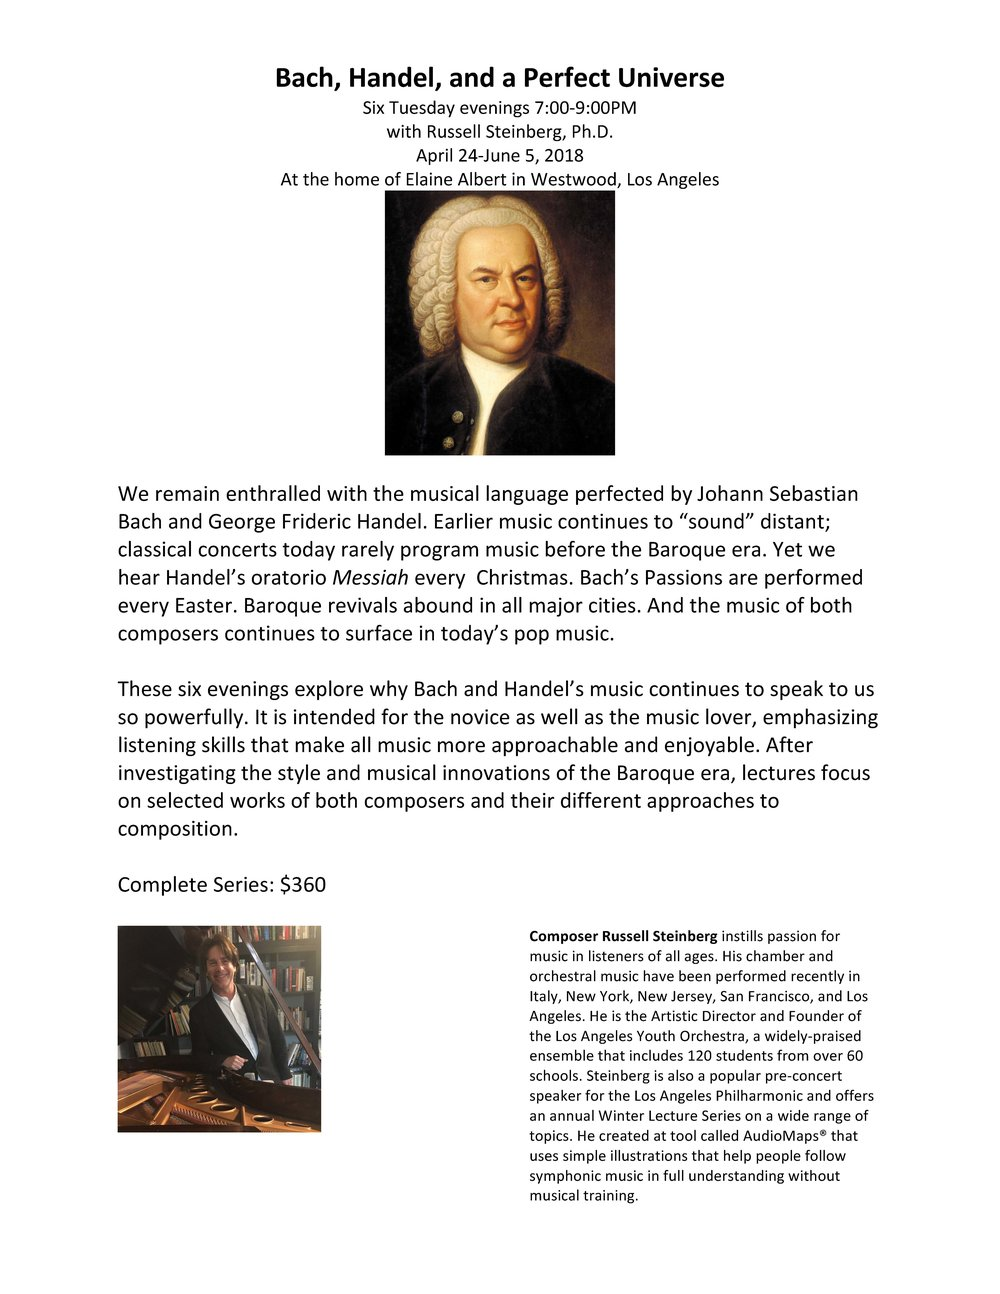 Bach-Handel Flyer 2018 series Tuesdays_Page_1.jpg